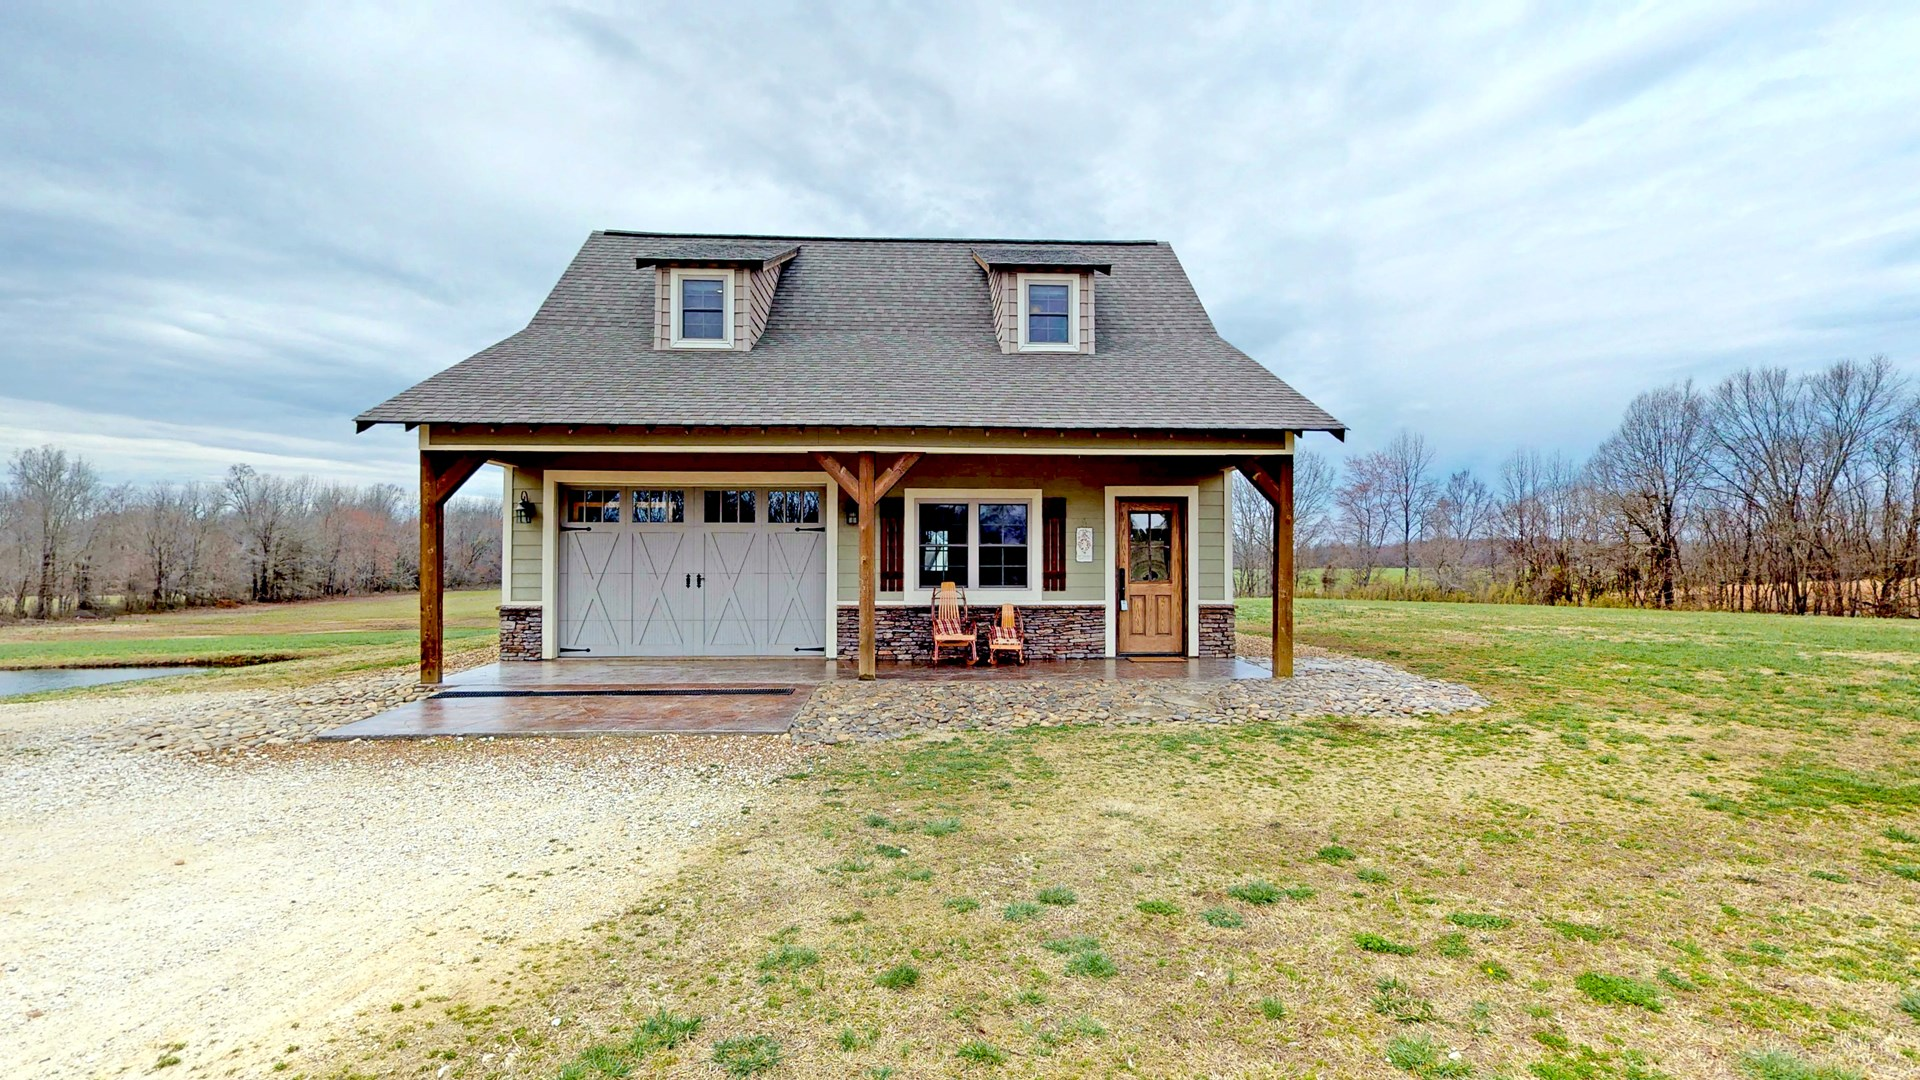 Tennessee Country Cabin For Sale, 5+ ACRES, Workshop / Pond